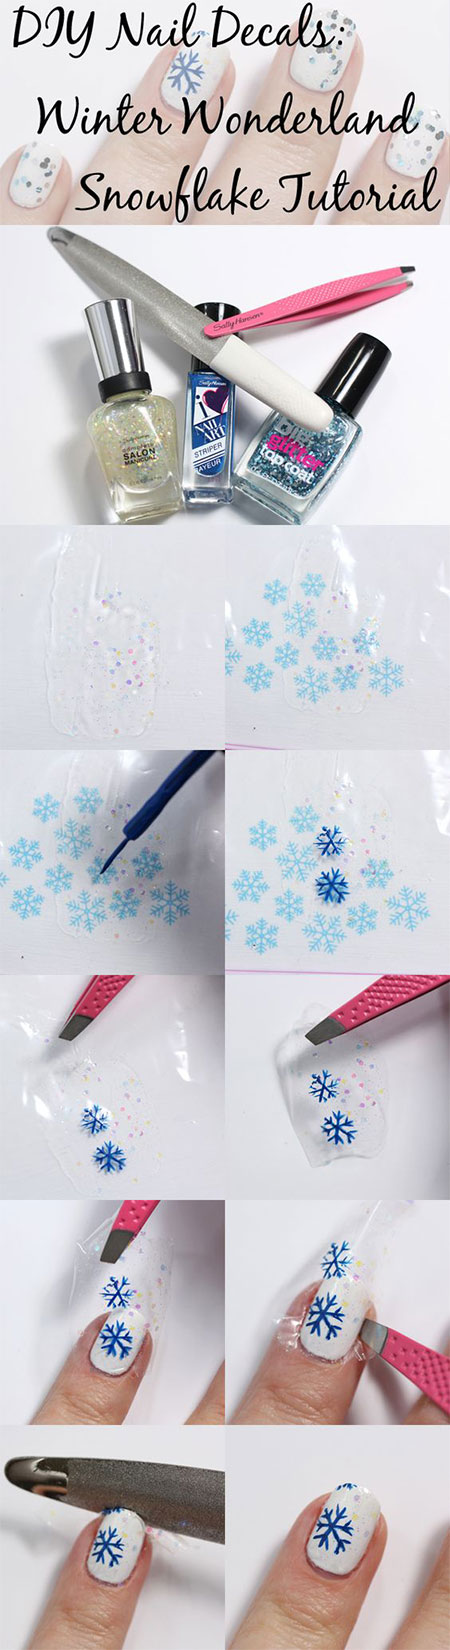 10-Easy-Simple-Winter-Nails-Art-Tutorials-For-Beginners-2017-9